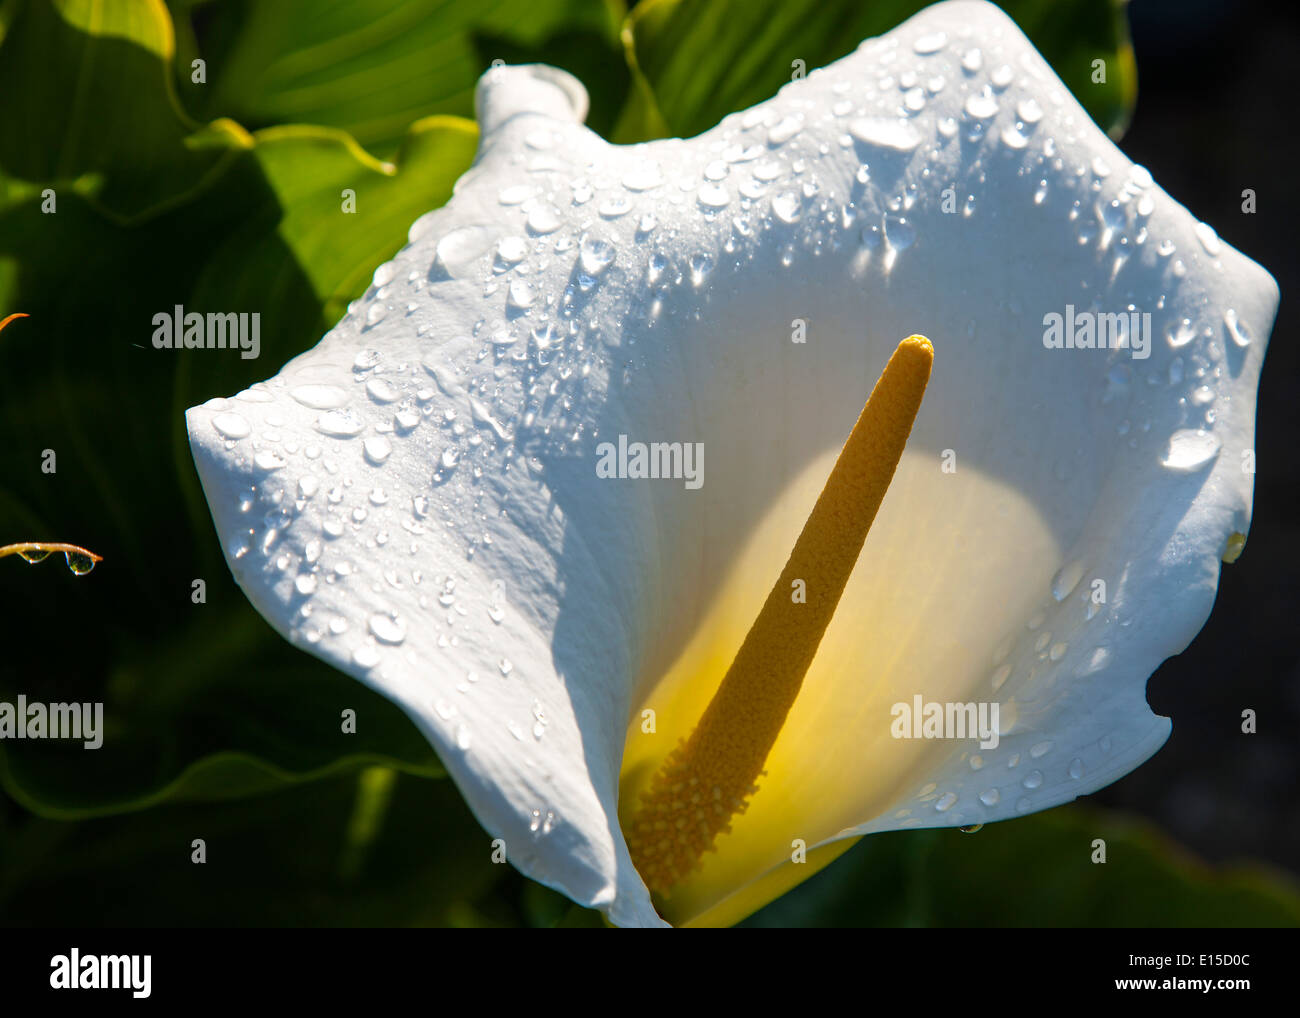 Flower shower stock photos flower shower stock images alamy a lily flower after a shower of rain stock image izmirmasajfo Choice Image